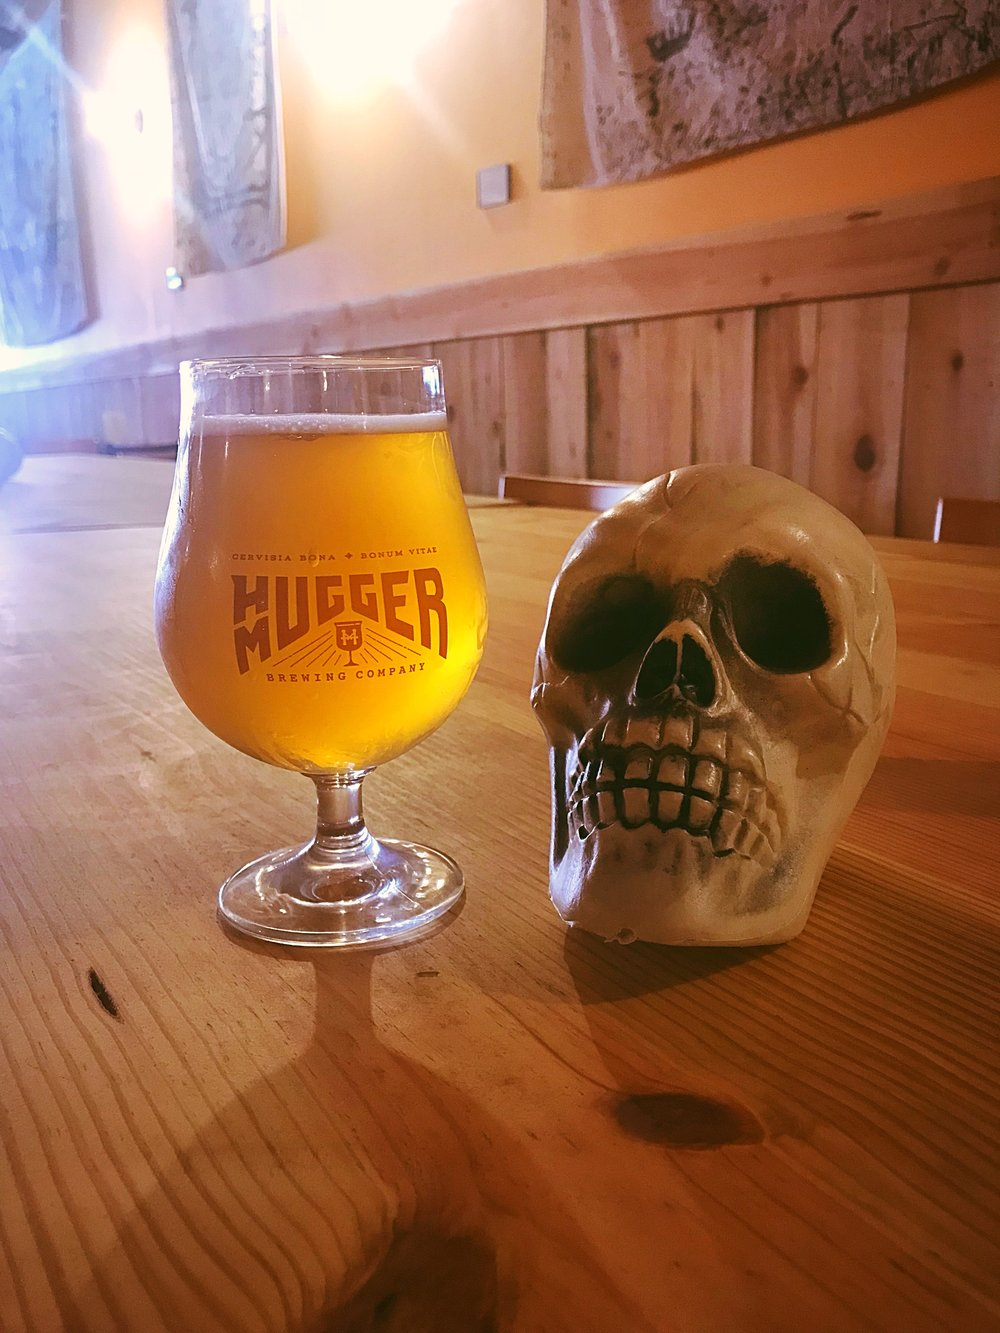 "- Hastur ""The King in Yellow"" Belgian Tripel 9% ABV 20 IBUNamed after the half brother of the fabled Cthulu, Hastur influences the creative mind from afar. This 9% peppery and spiced Belgian Tripel will deceive in strength. Pale yellow in color and dry on the palate this quaff demon will sneak up on you."